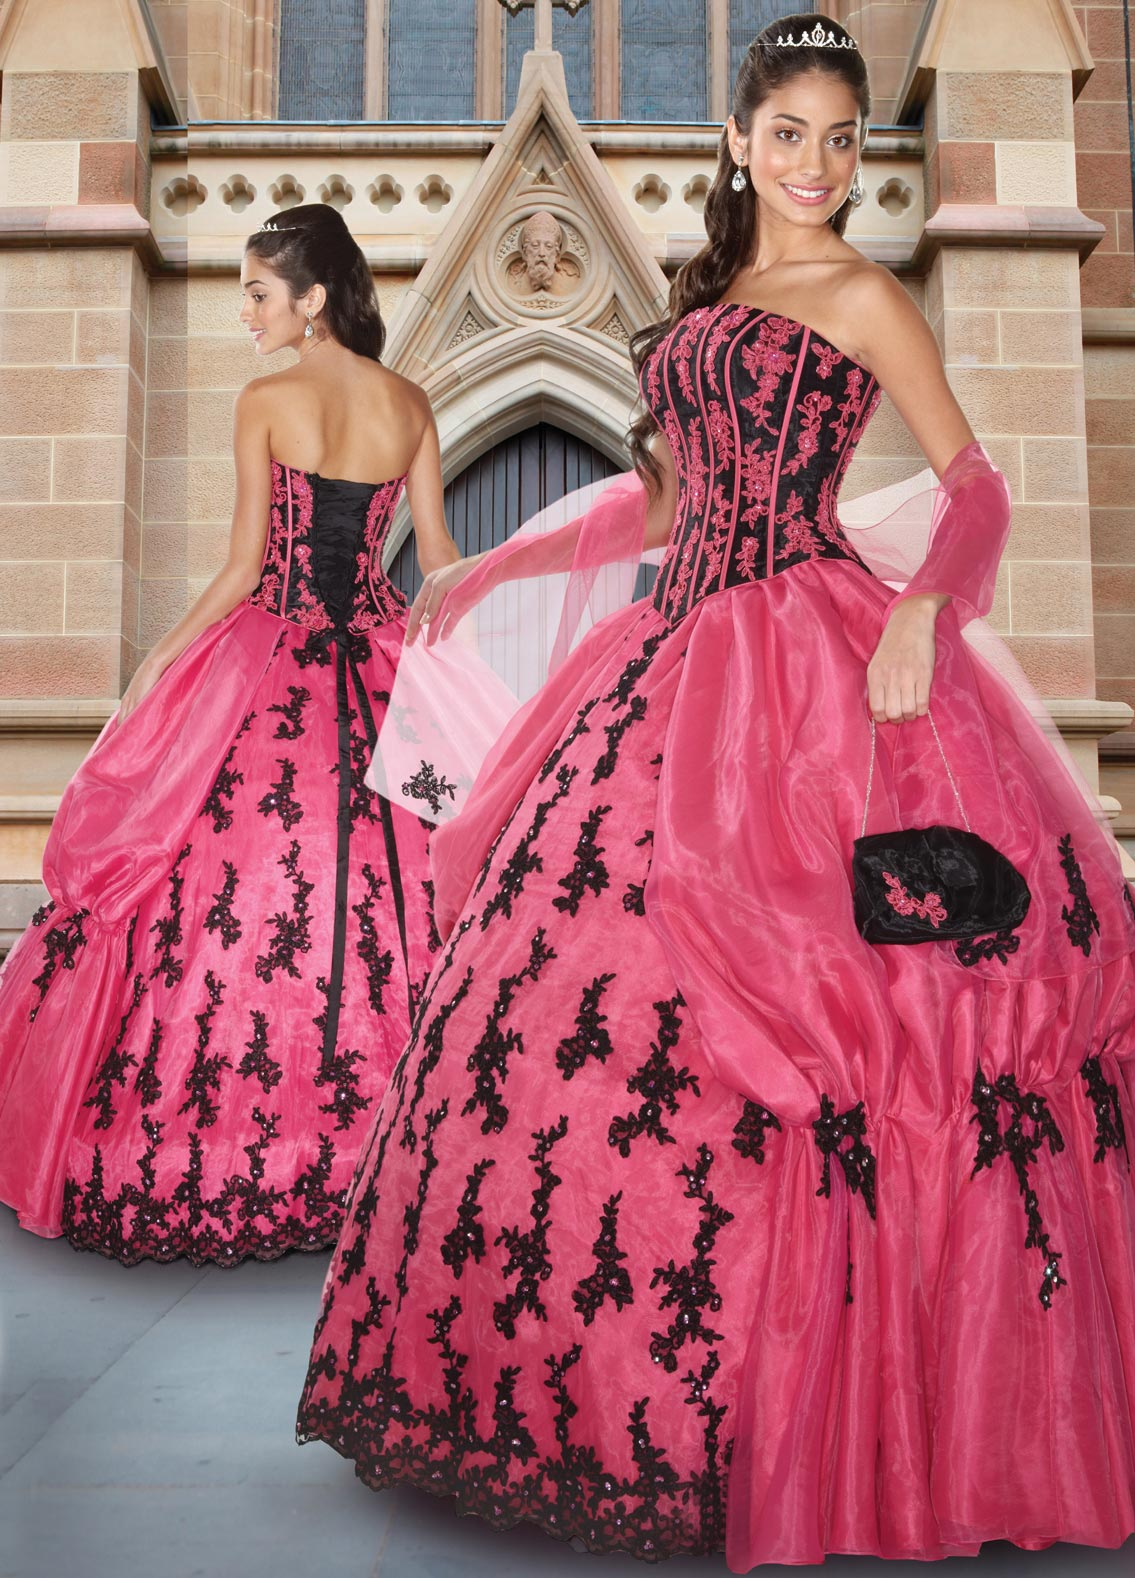 Deep Pink And Black Ball Gown Strapless Full Length Quinceanera Dresses With Appliques And Ruffles